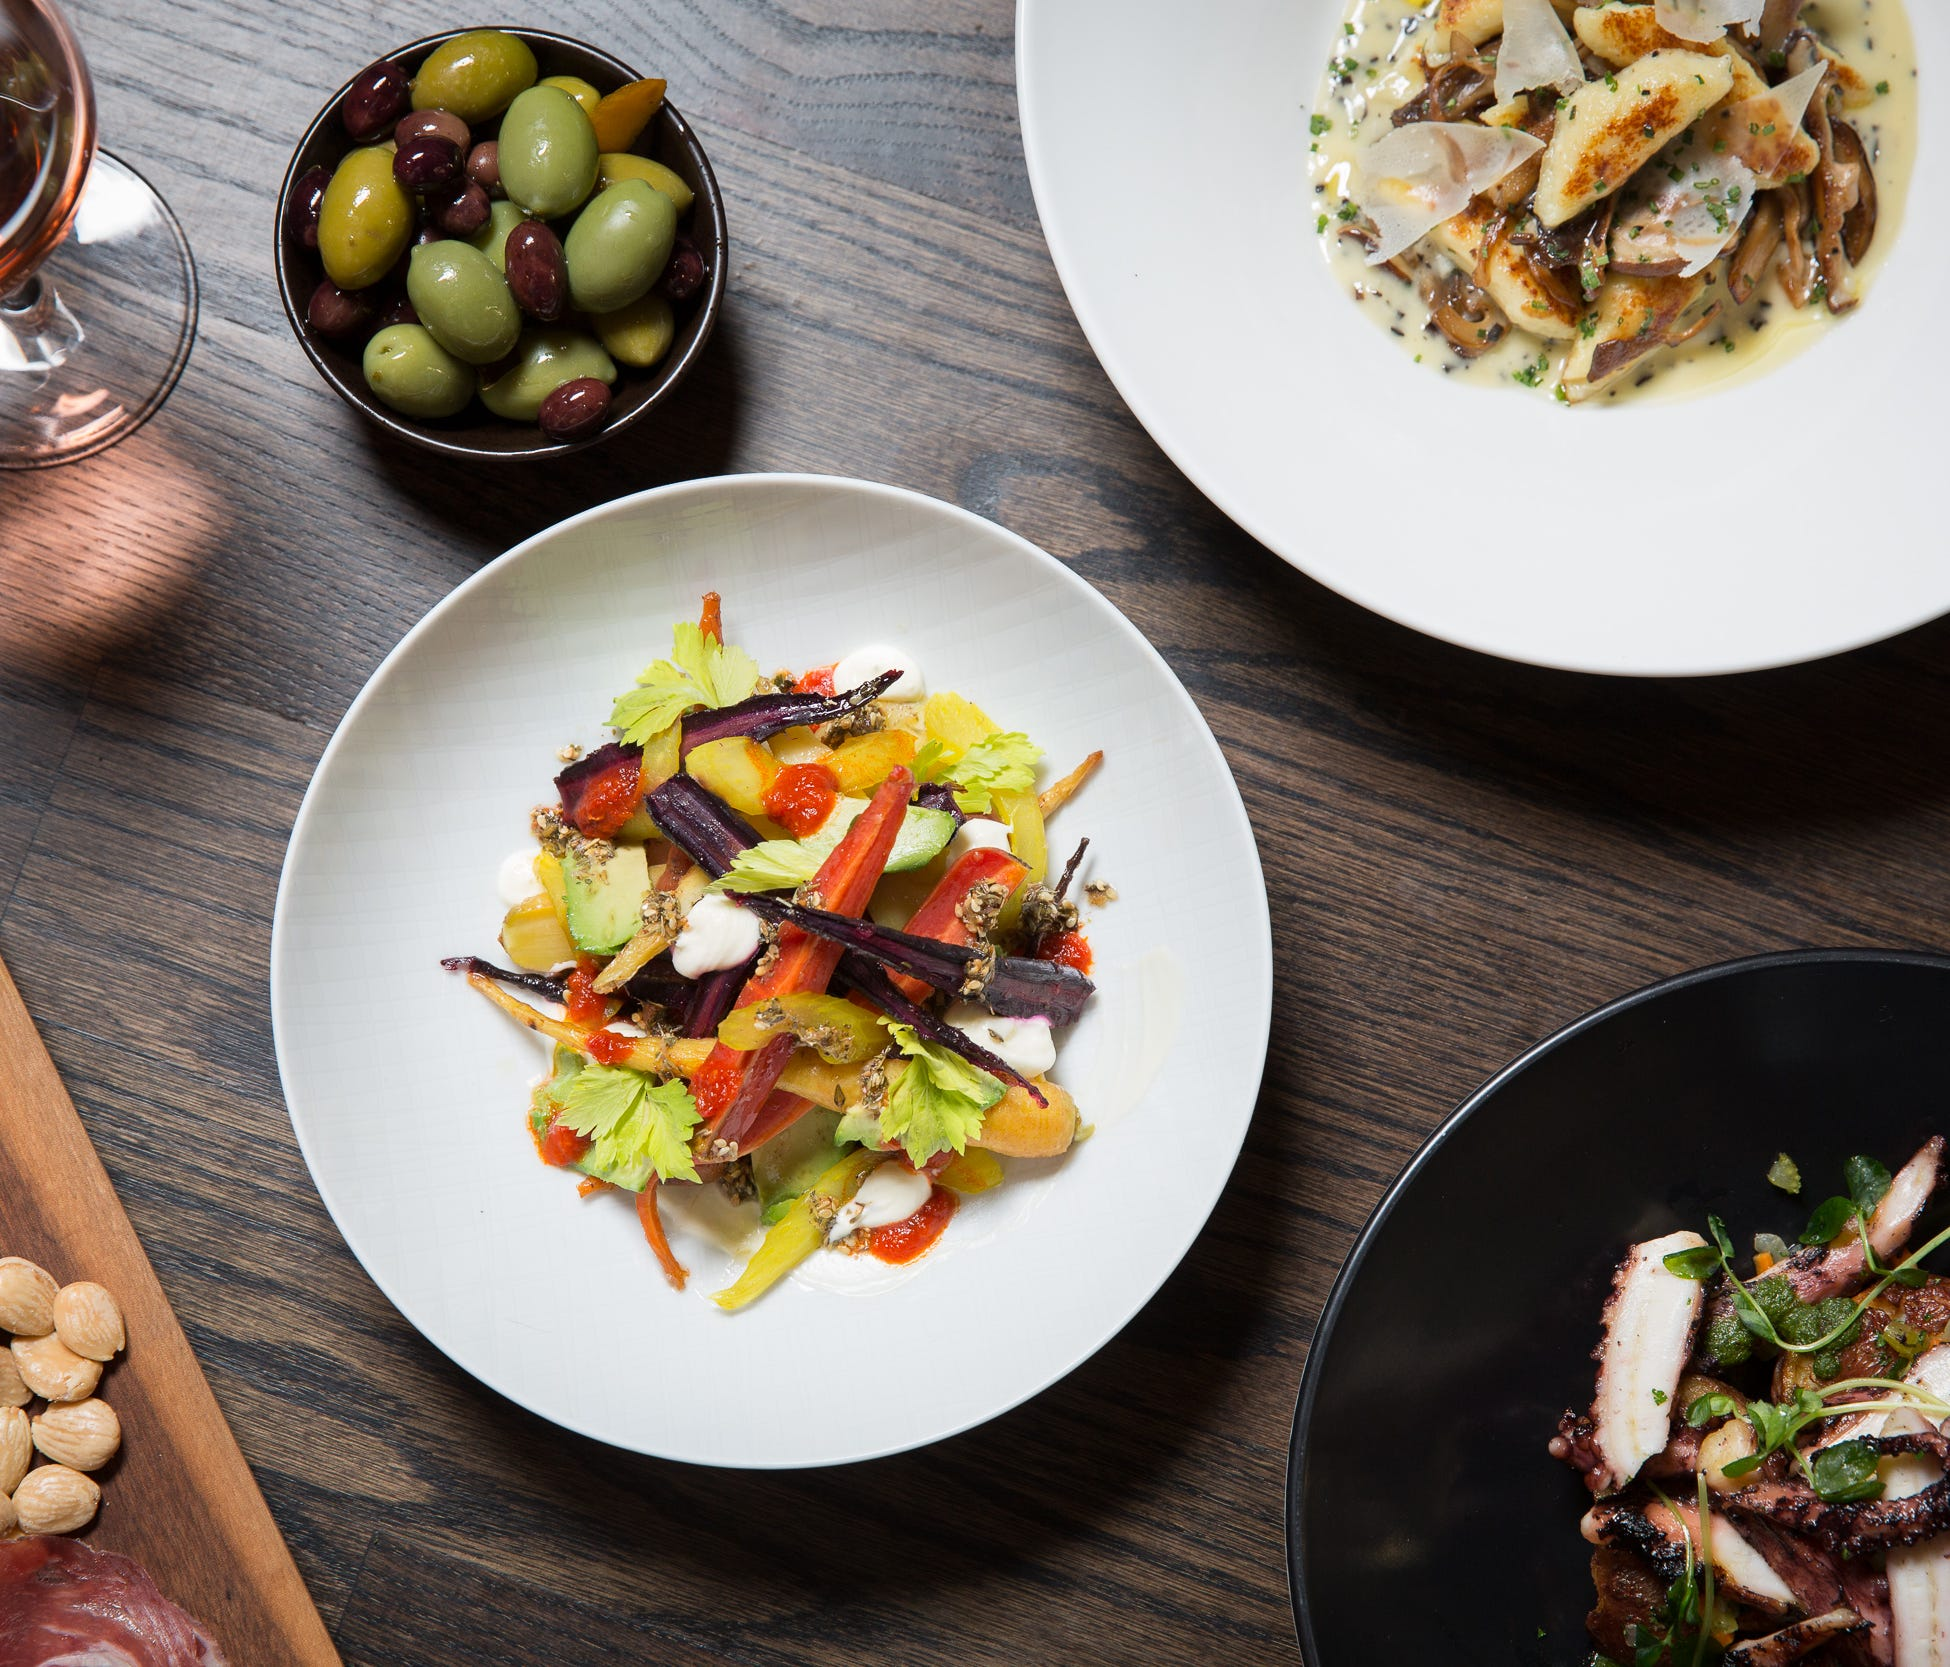 Ella Elli's menu is inspired by Italy, France and Spain with dishes from charcuterie and toasts to vegetables, pizza and pasta.